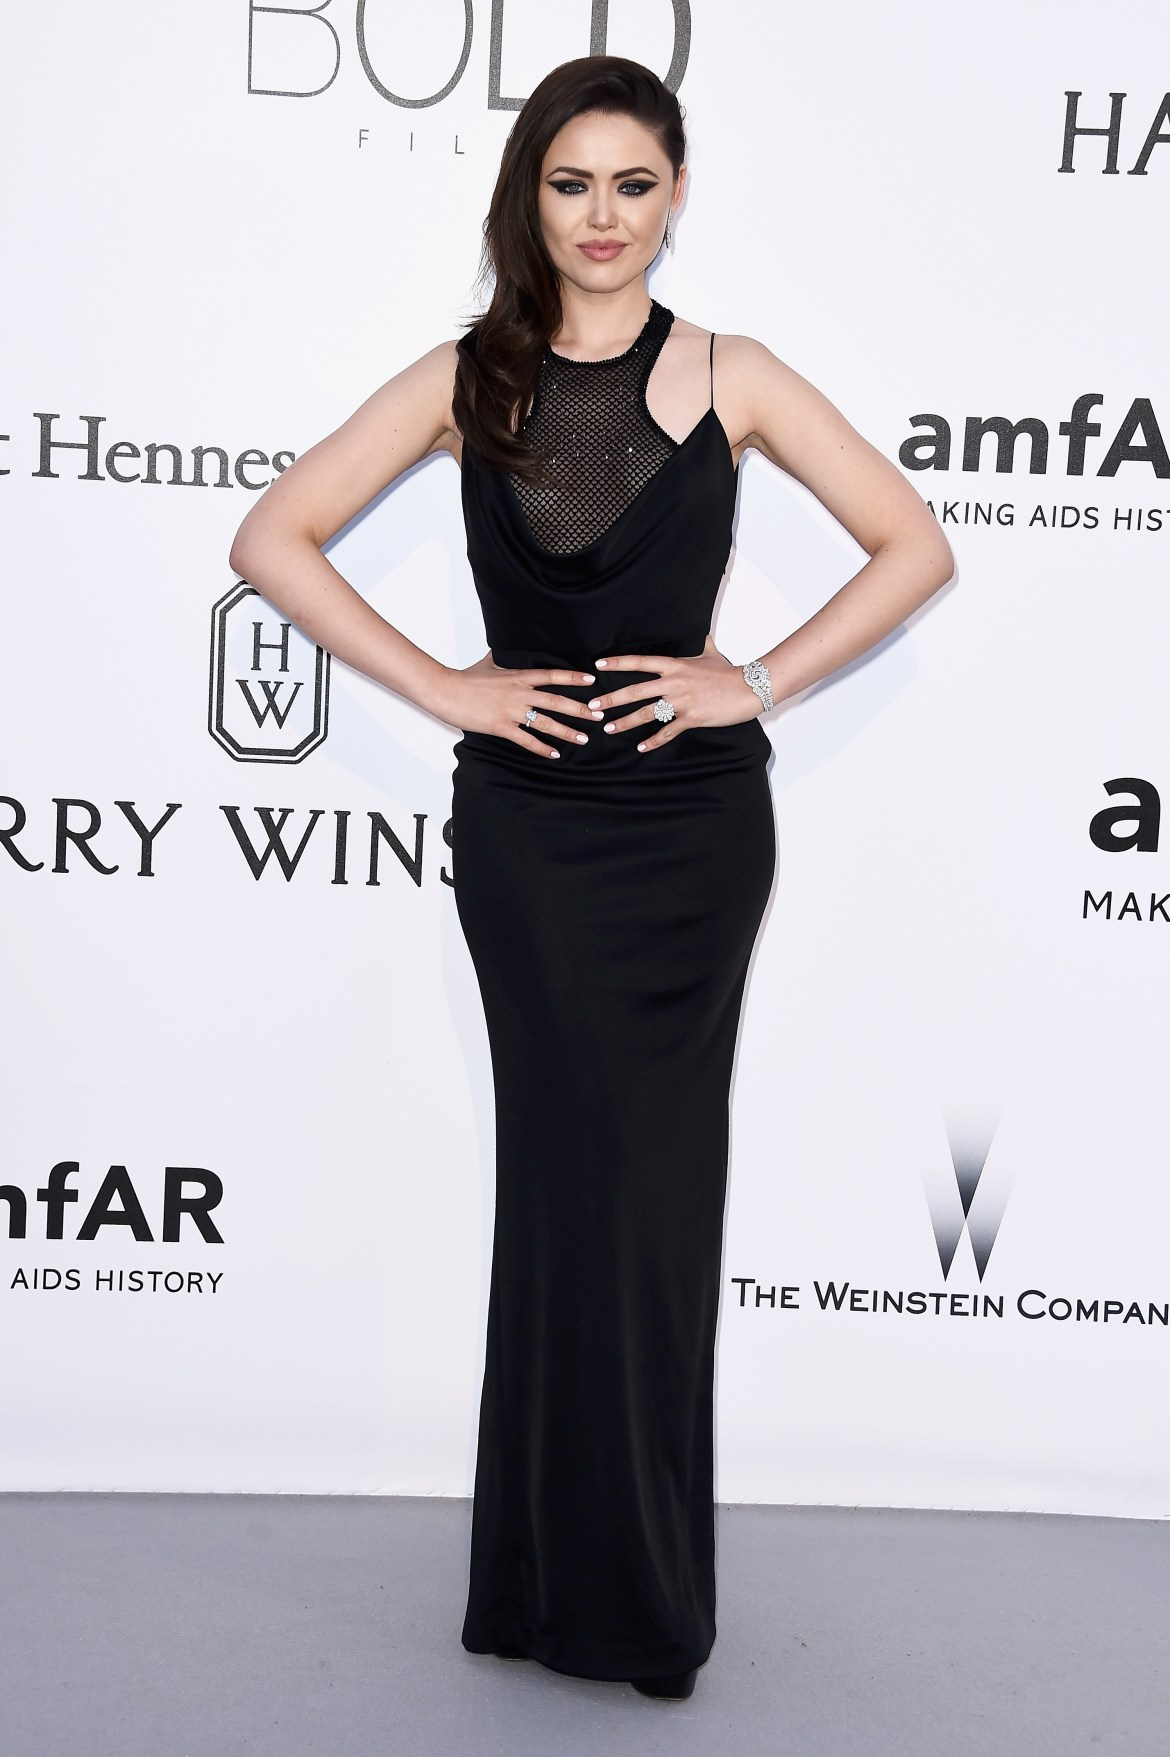 CAP D'ANTIBES, FRANCE - MAY 19: Kristina Bazan arrives at amfAR's 23rd Cinema Against AIDS Gala at Hotel du Cap-Eden-Roc on May 19, 2016 in Cap d'Antibes, France. (Photo by Ian Gavan/Getty Images)